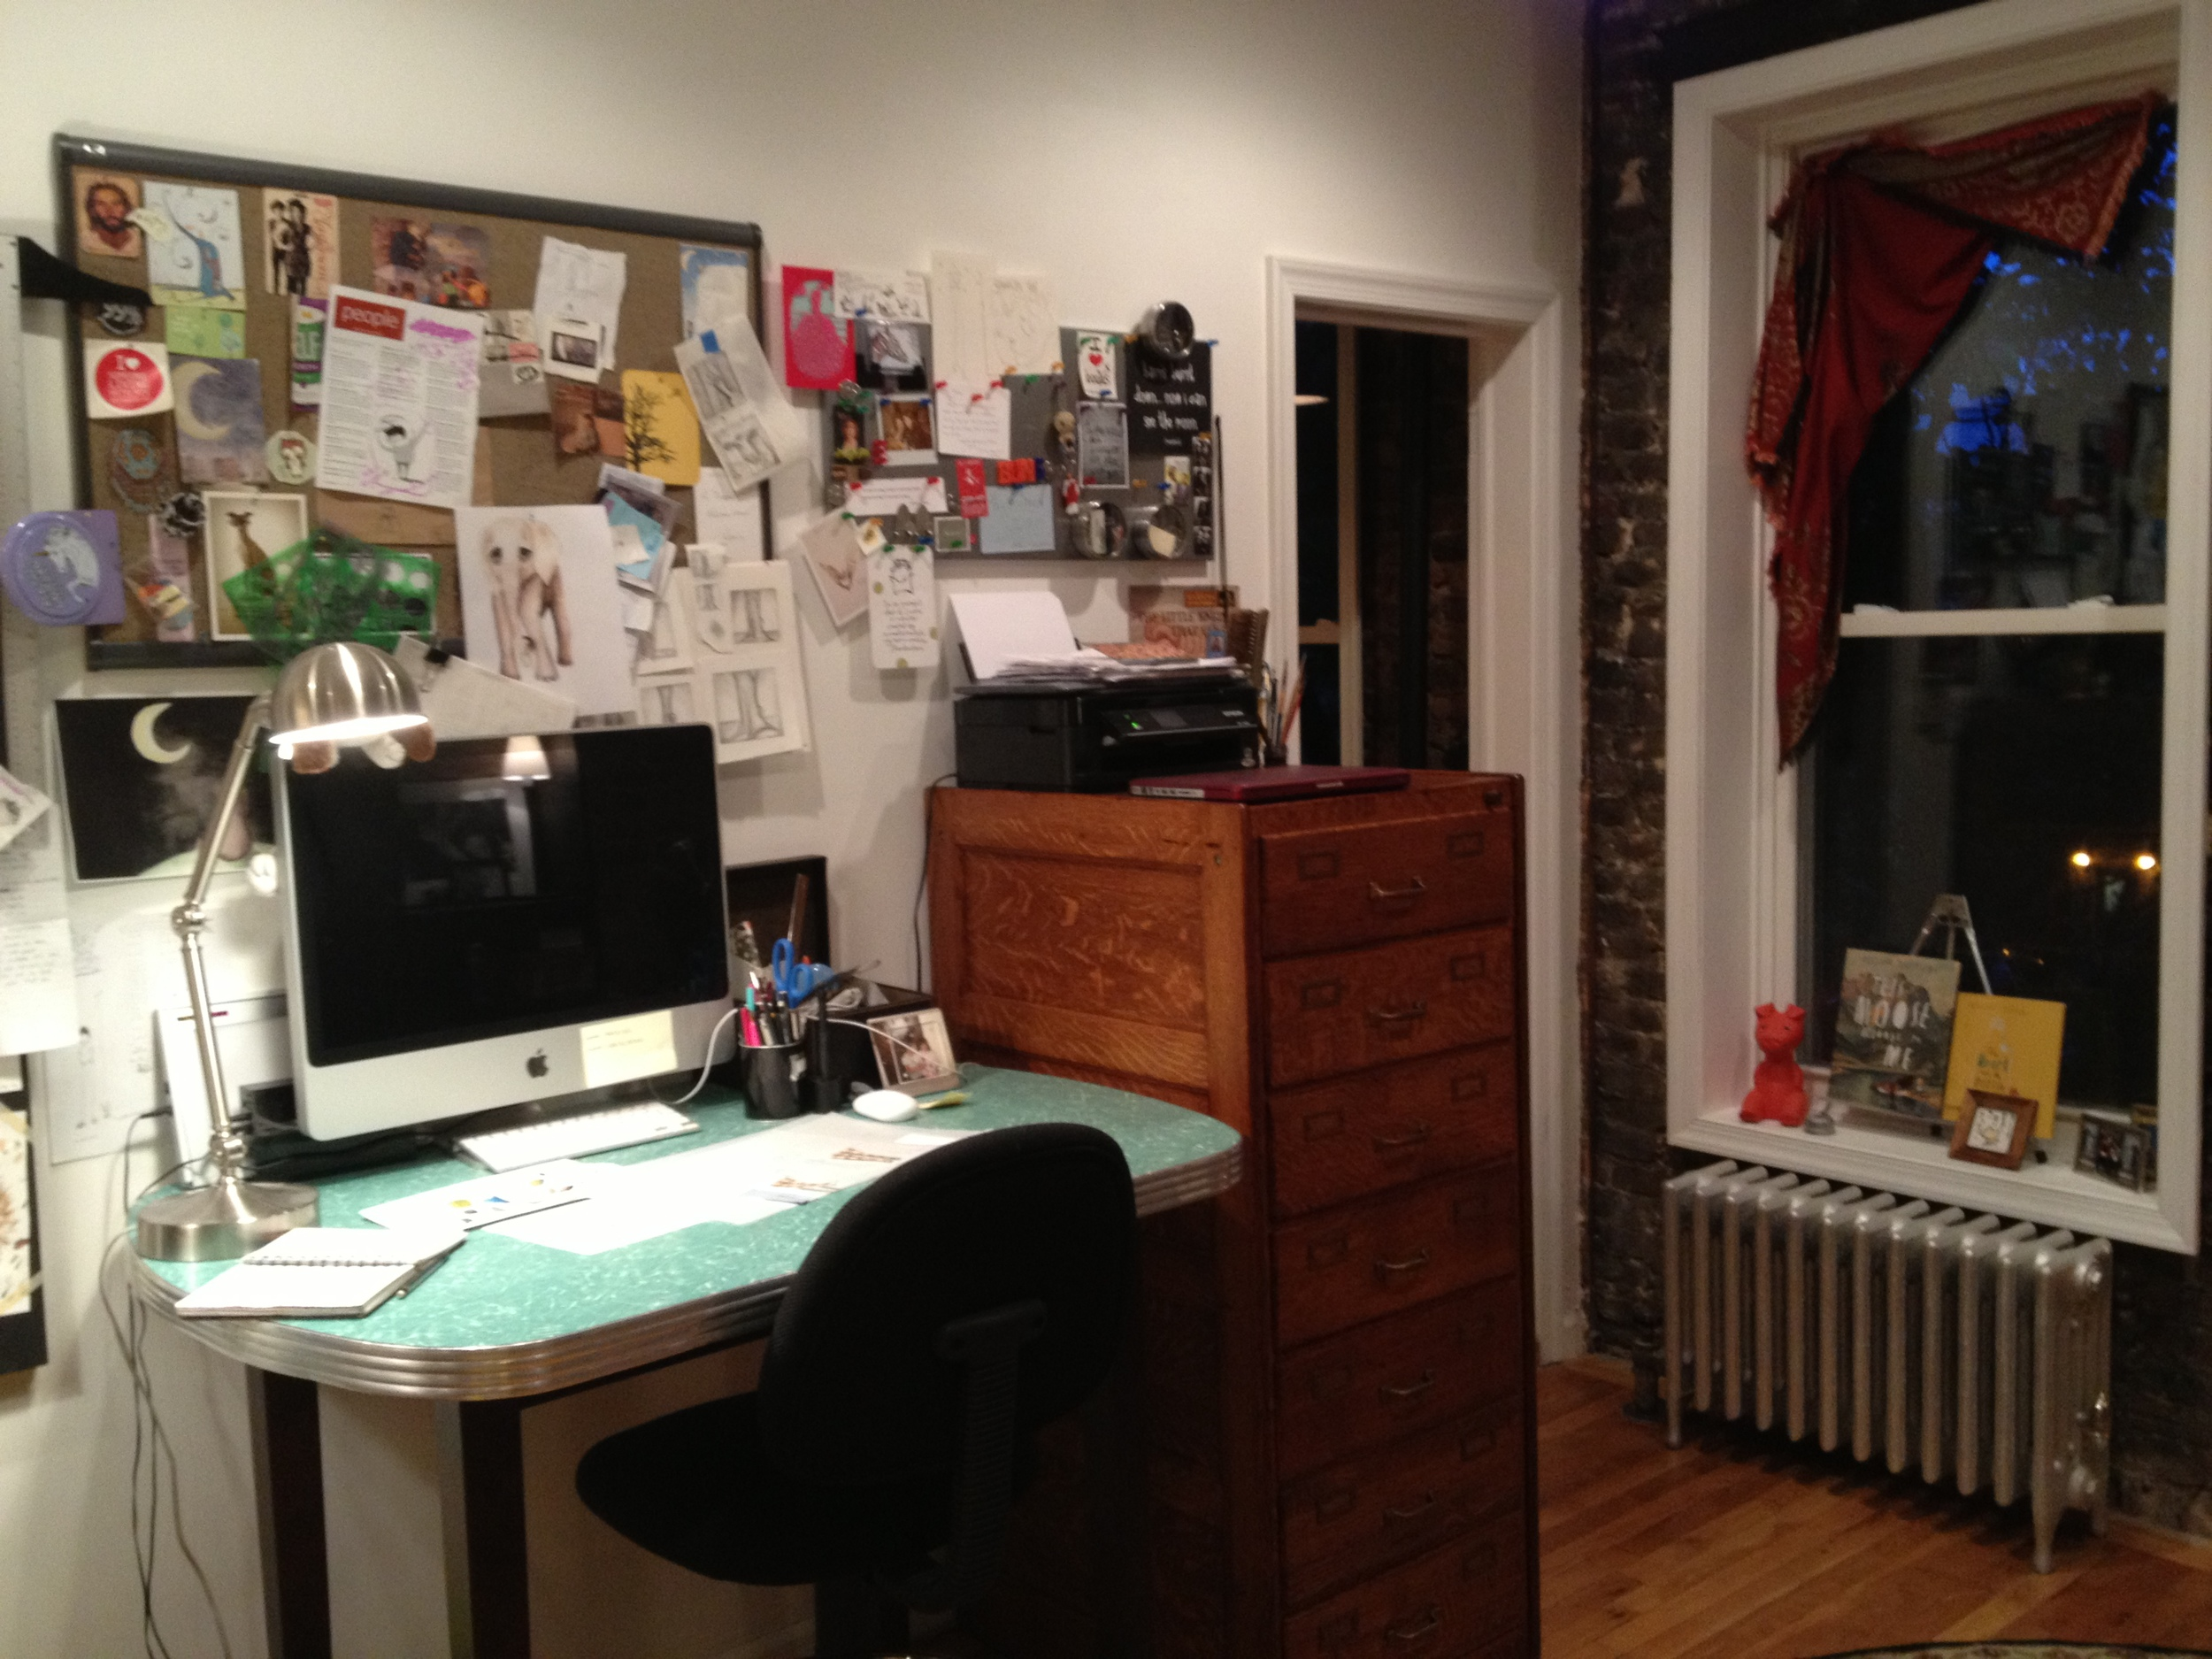 My desk at home in the East Village.